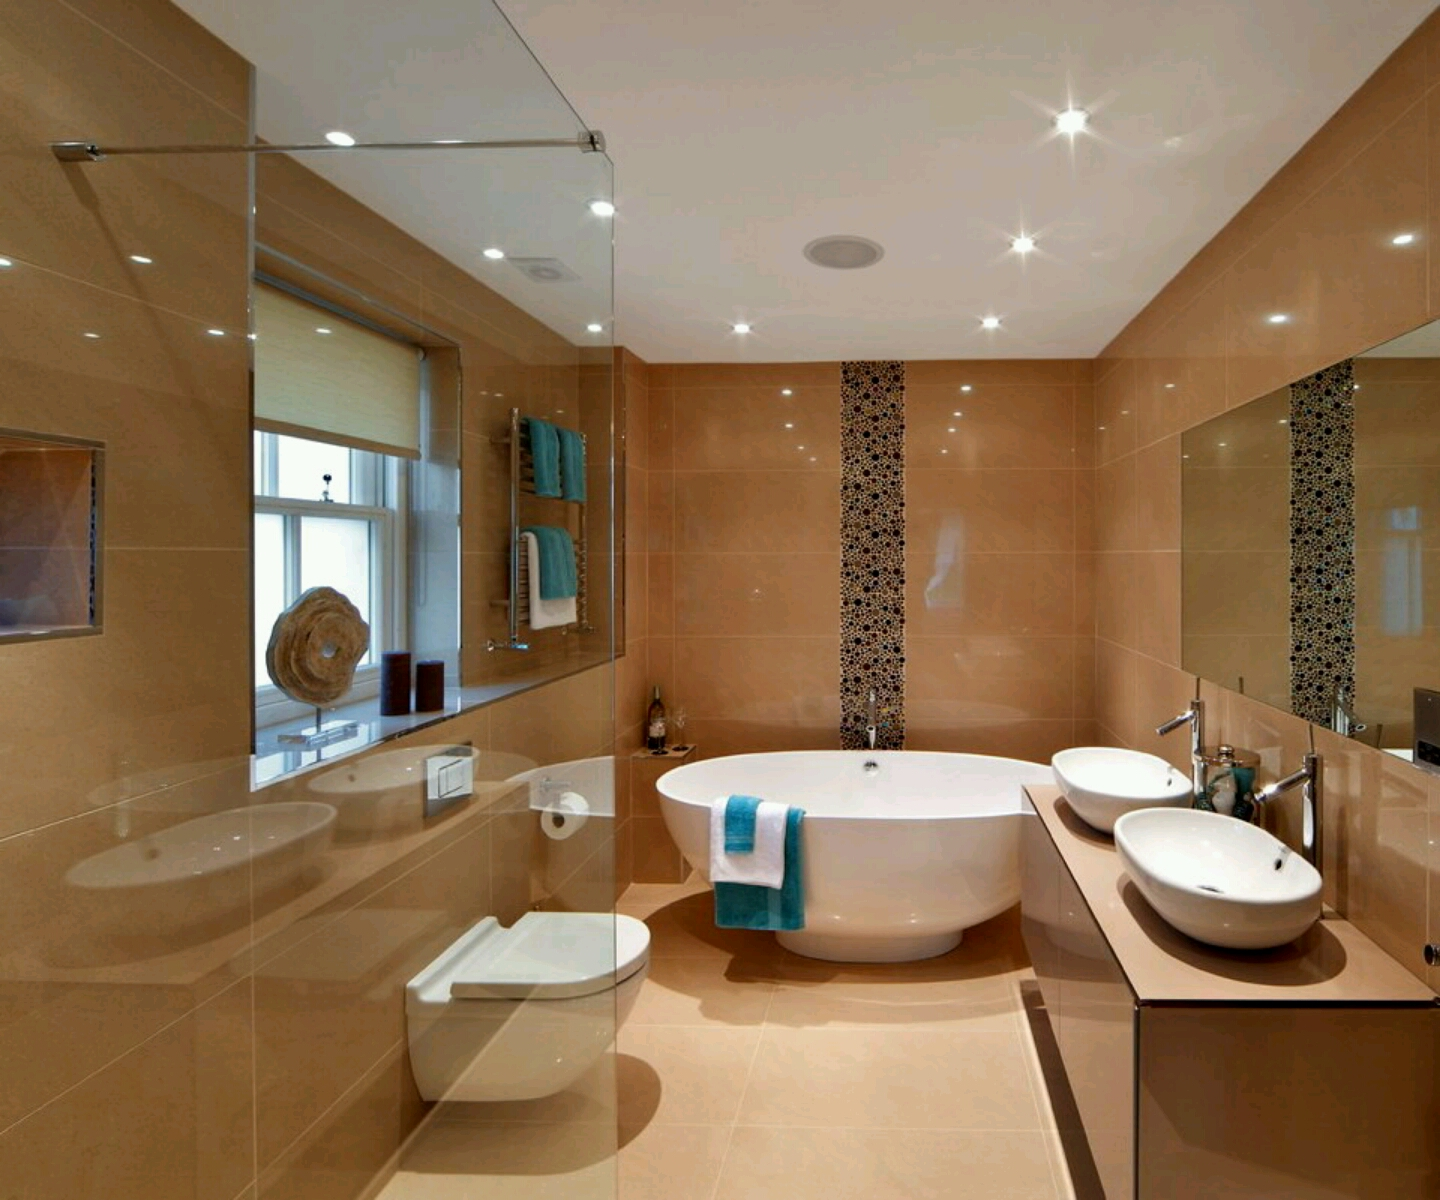 New home designs latest luxury modern bathrooms designs for Bathroom ideas modern